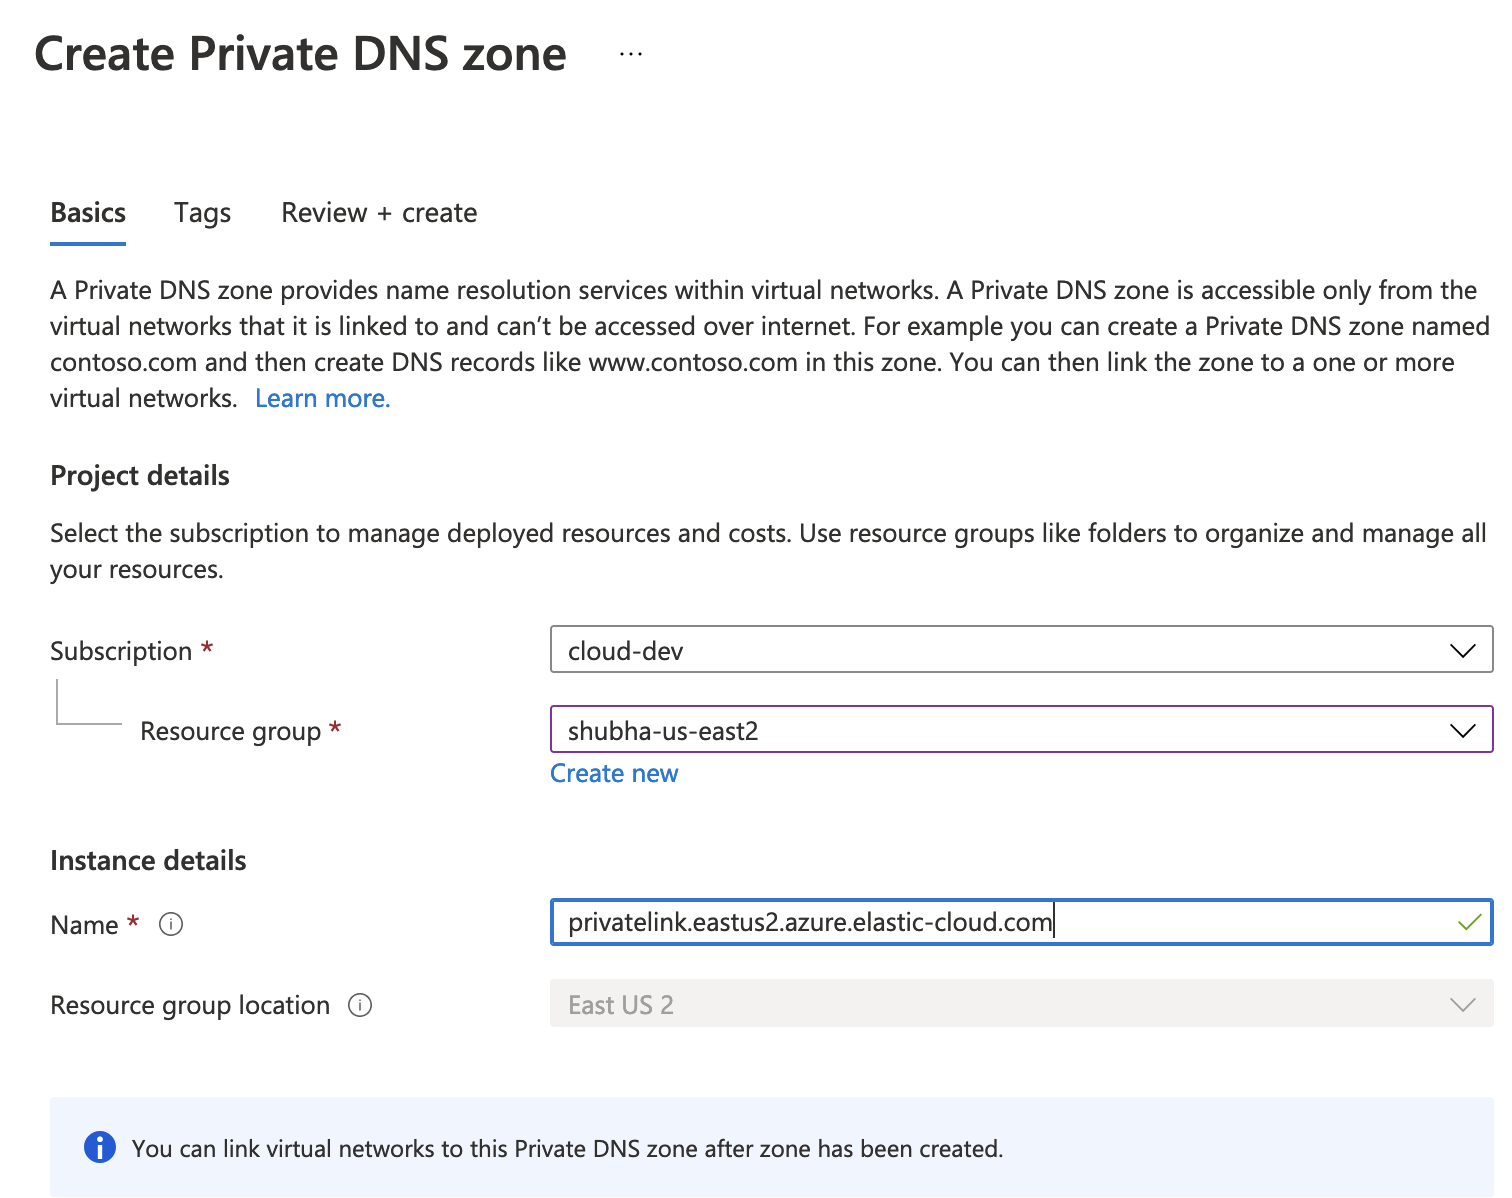 blog-azure-private-link-create-private-dns-zone.png